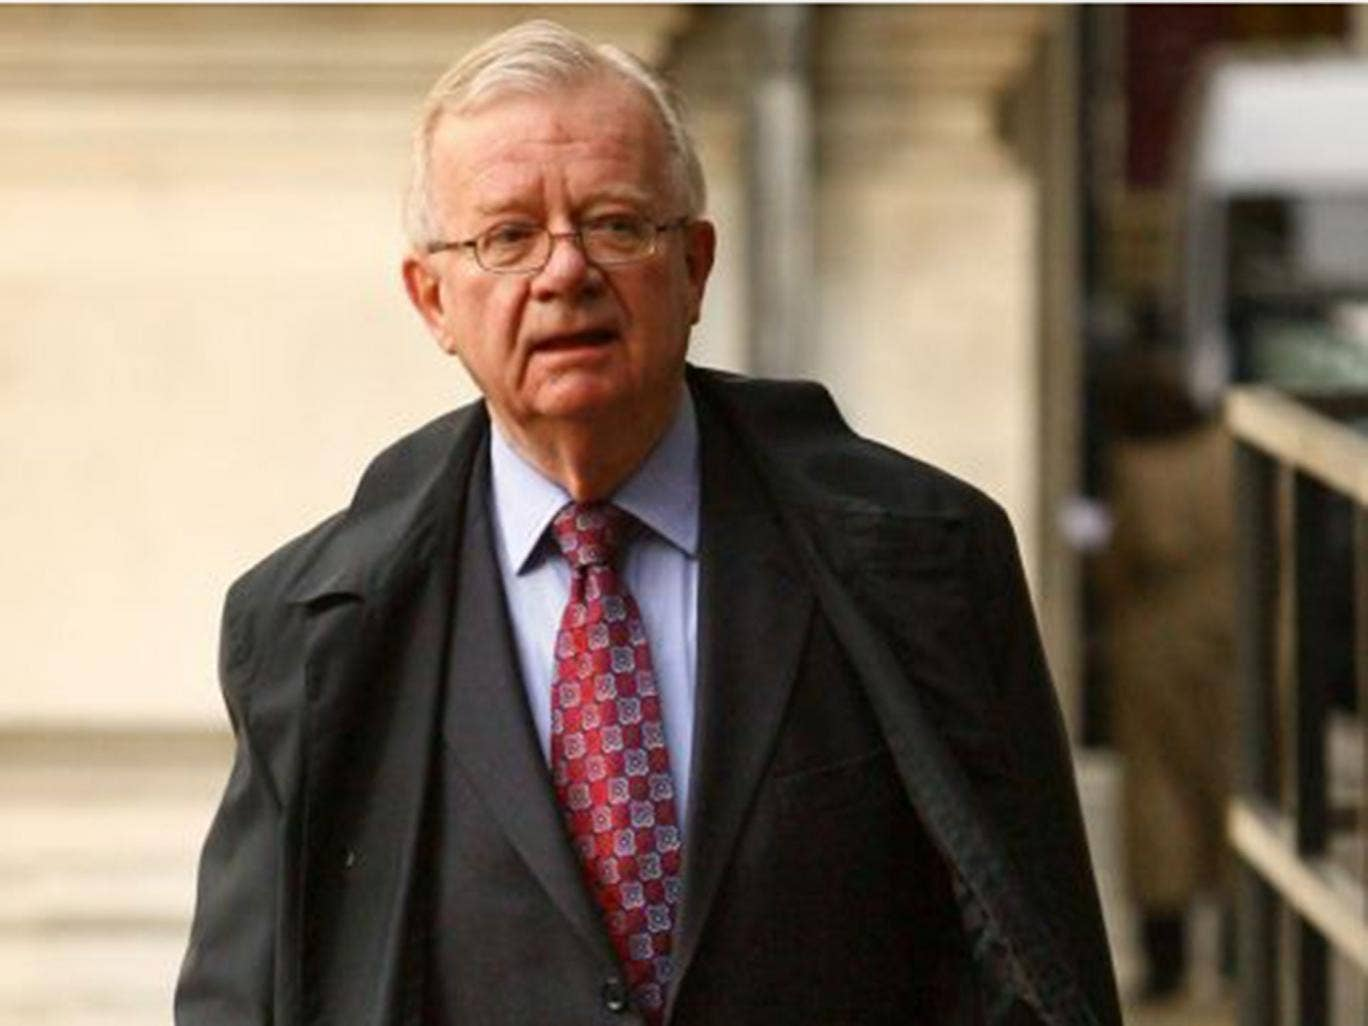 Sir John Chilcot has chaired the inquiry